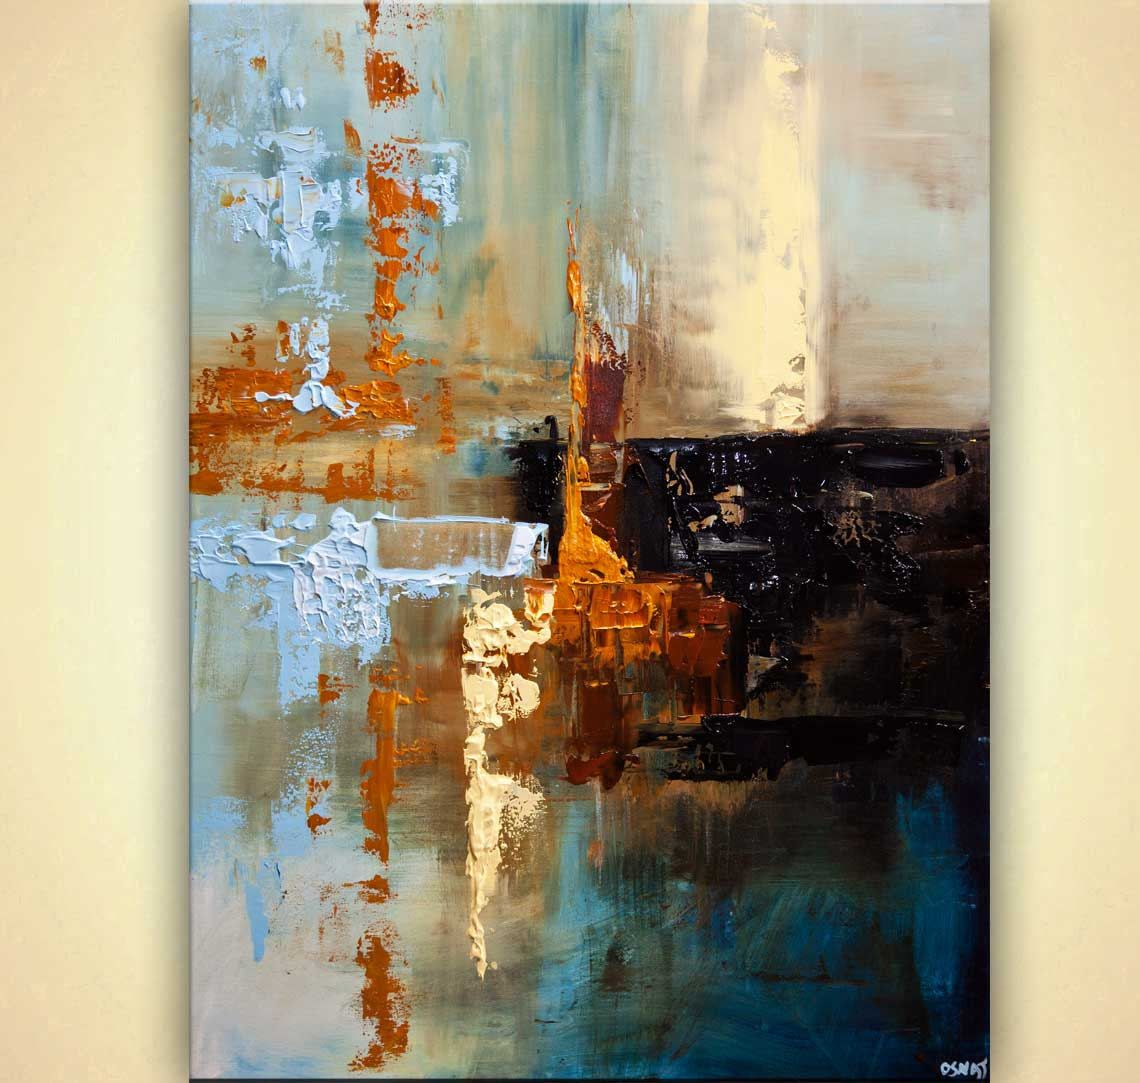 Canvas Art - Stretched Embellished & Ready-hang Print Dawn Osnat Aaa